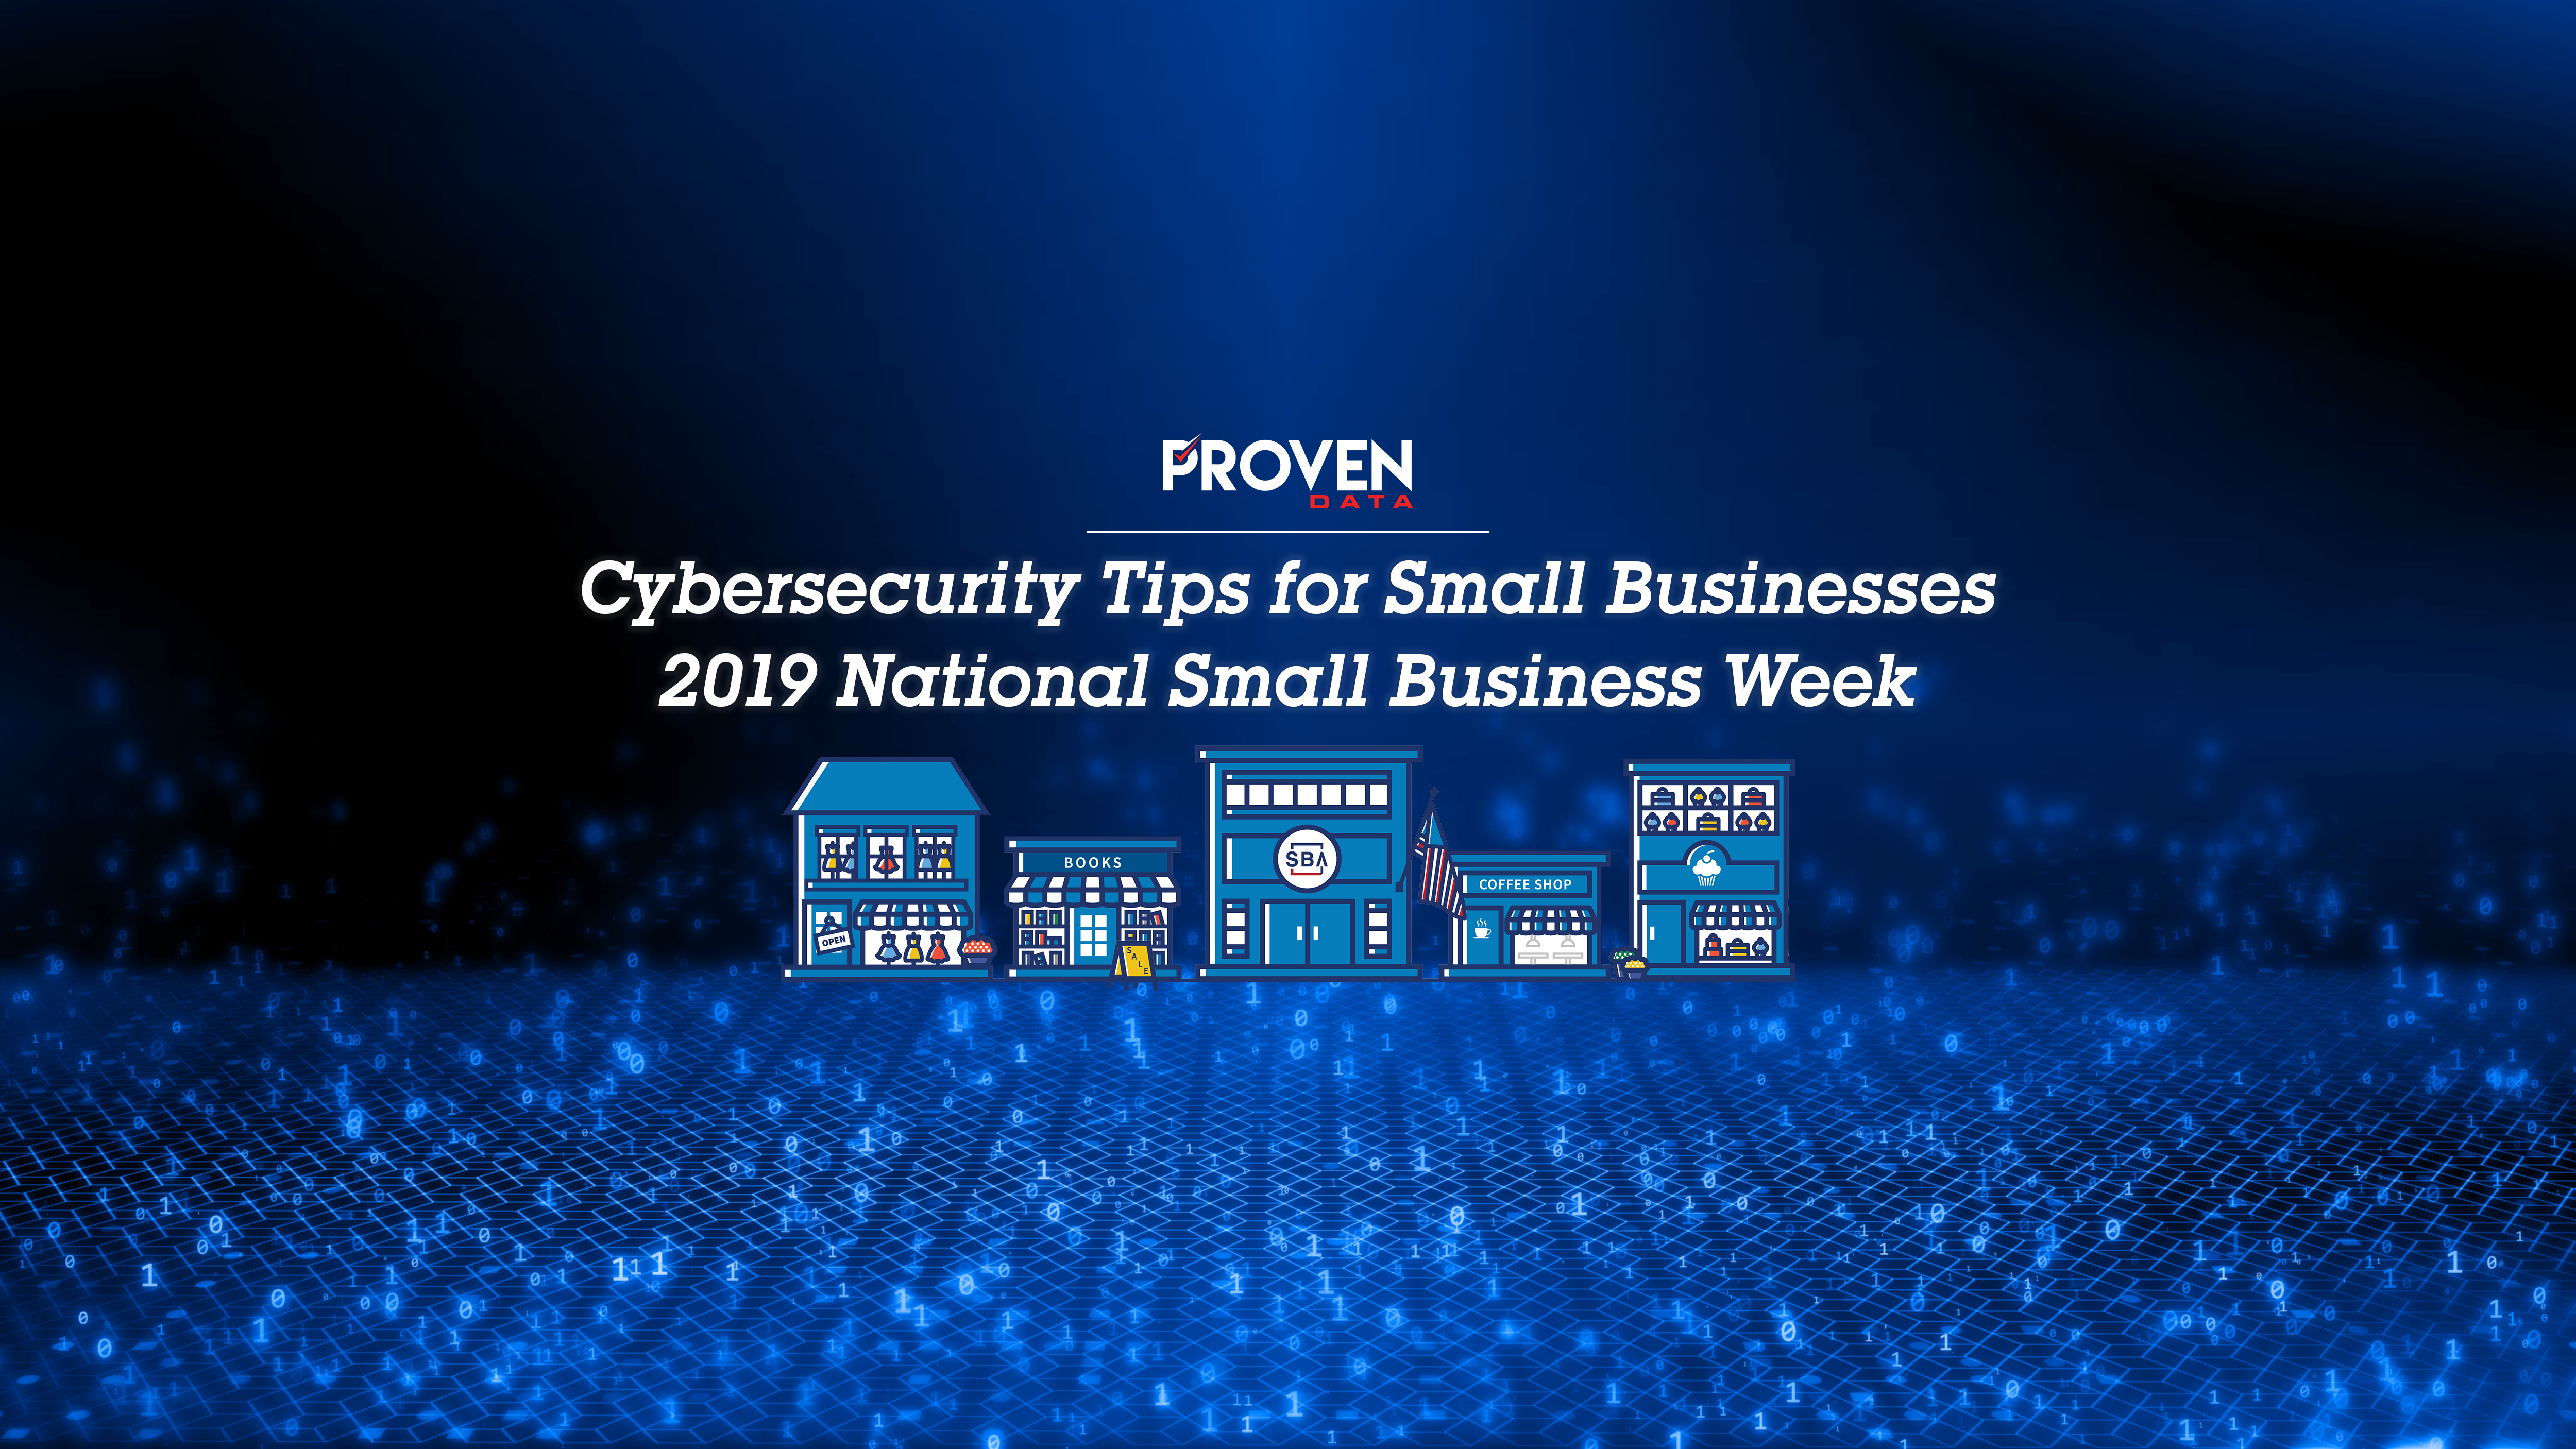 Cybersecurity Tips for Small Businesses (2019 National Small